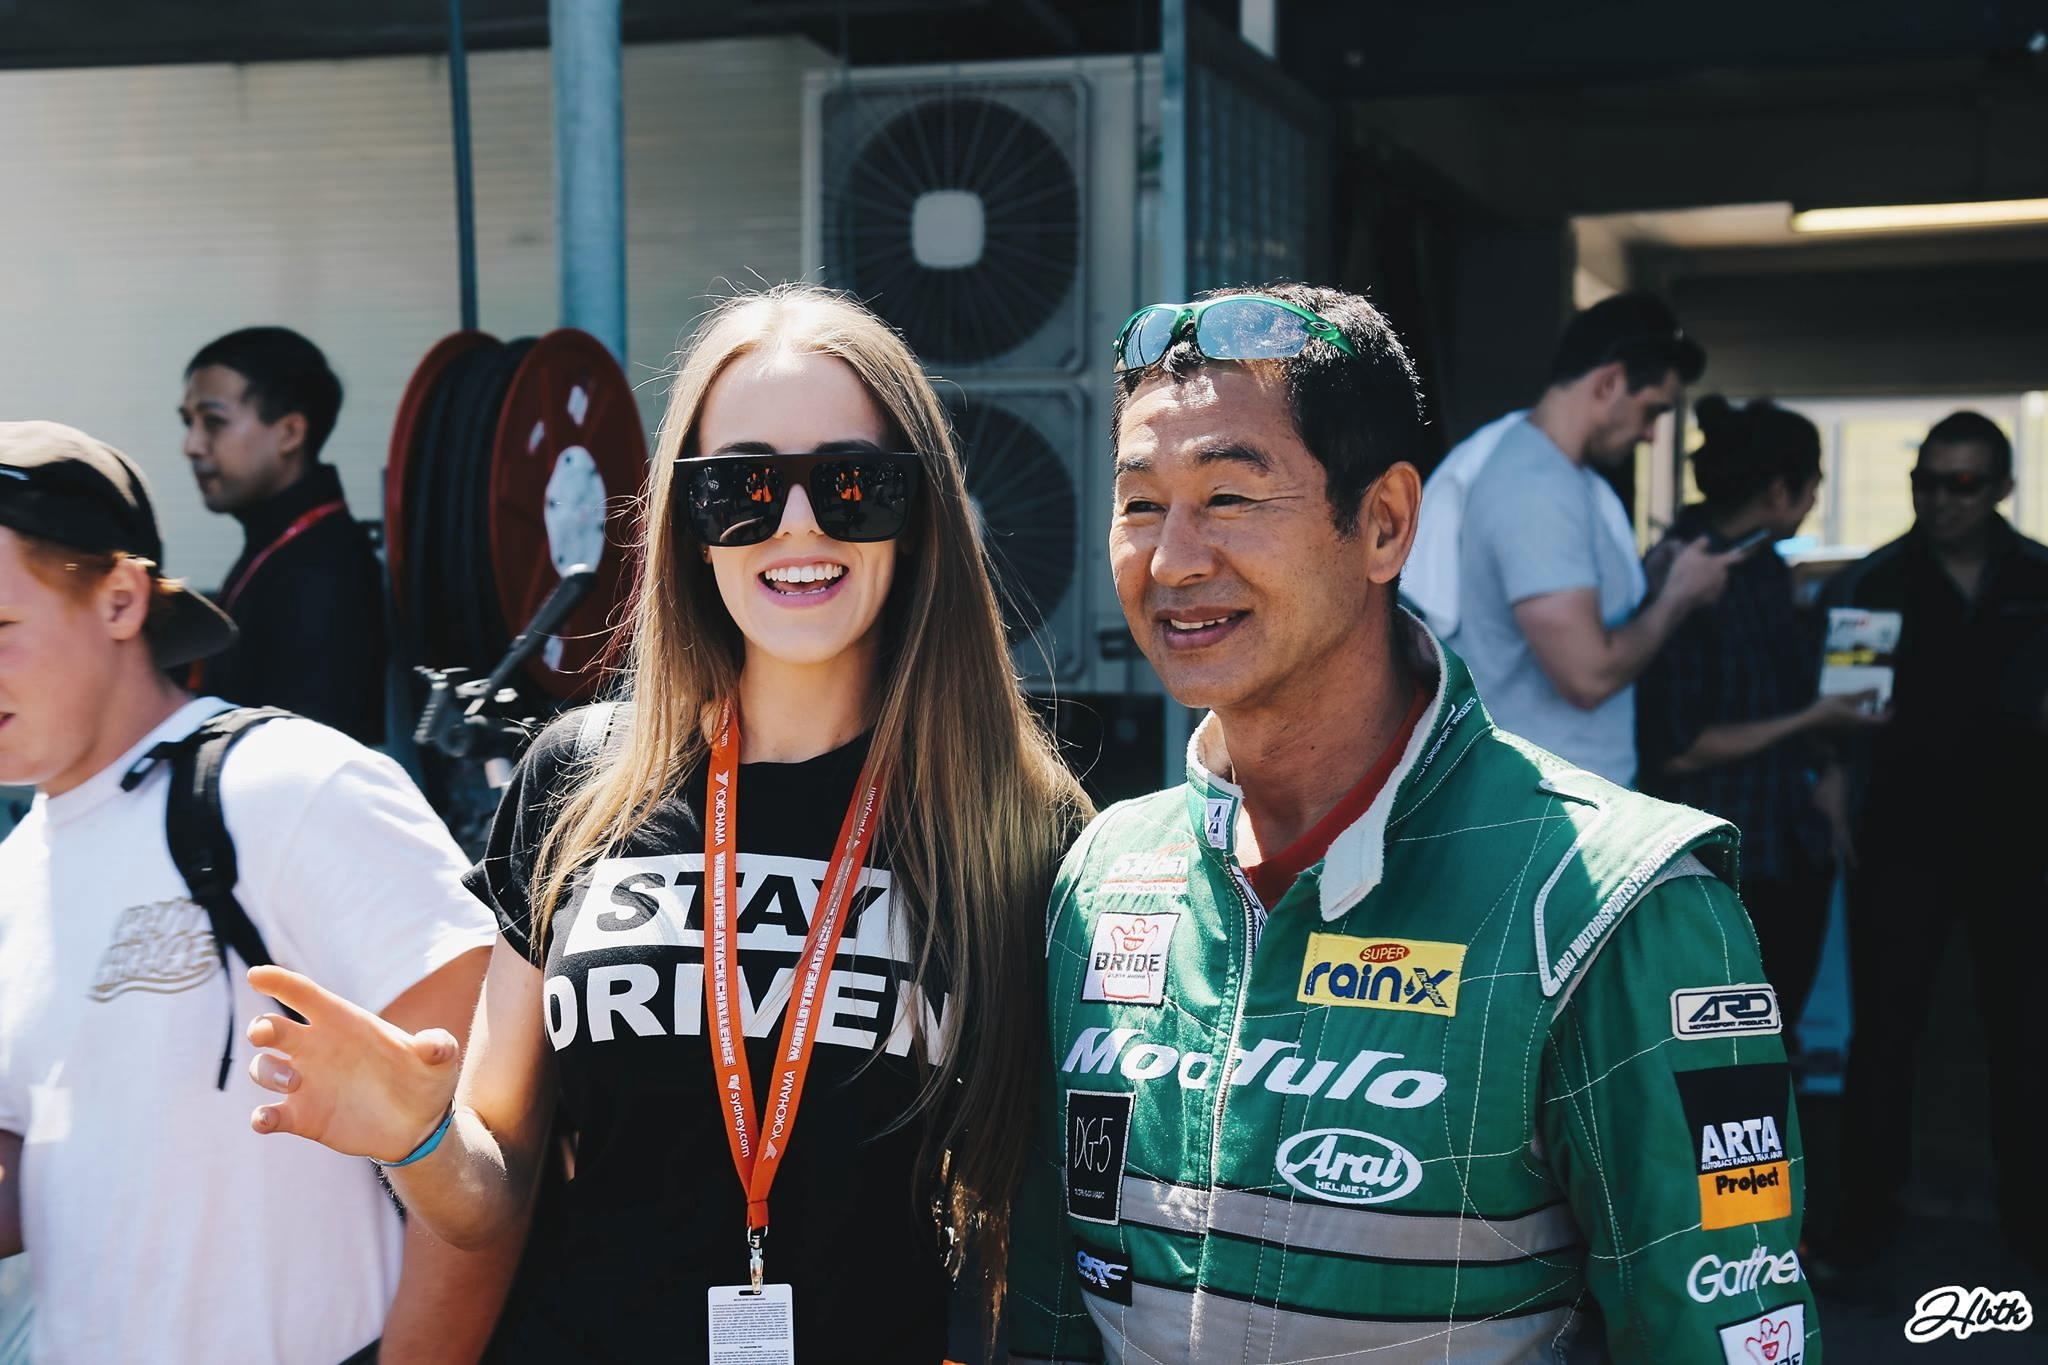 With the Drift King!Photo by HBTK.